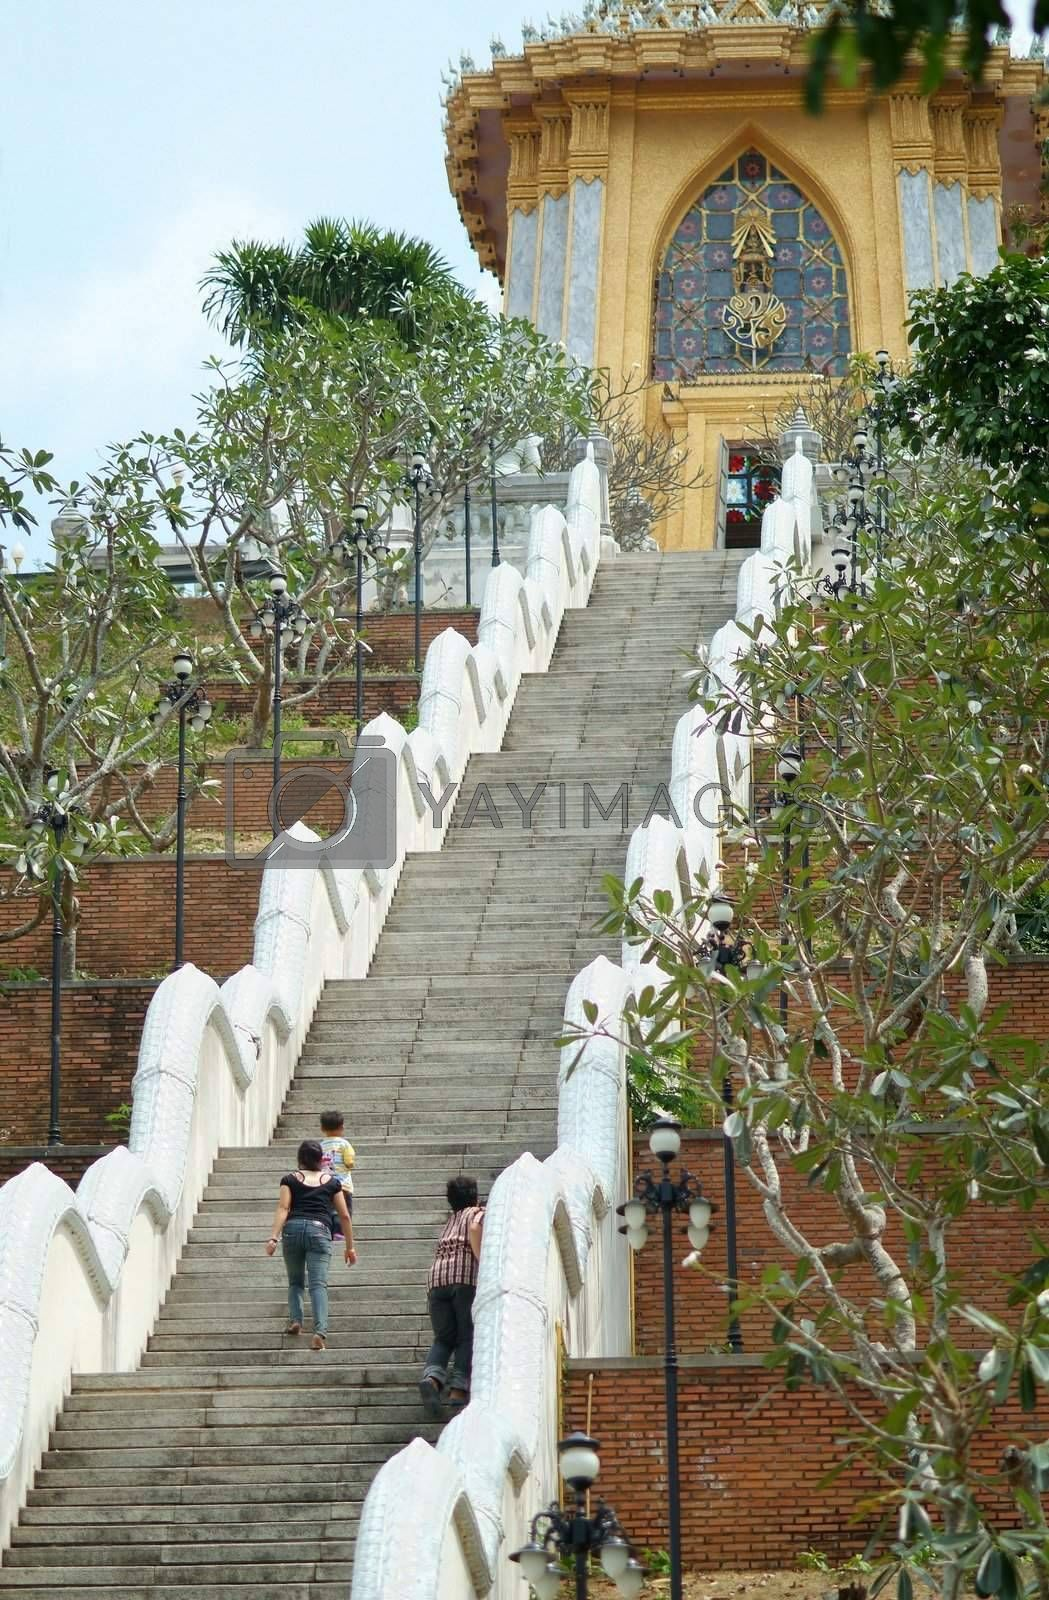 Stairs to a temple by epixx